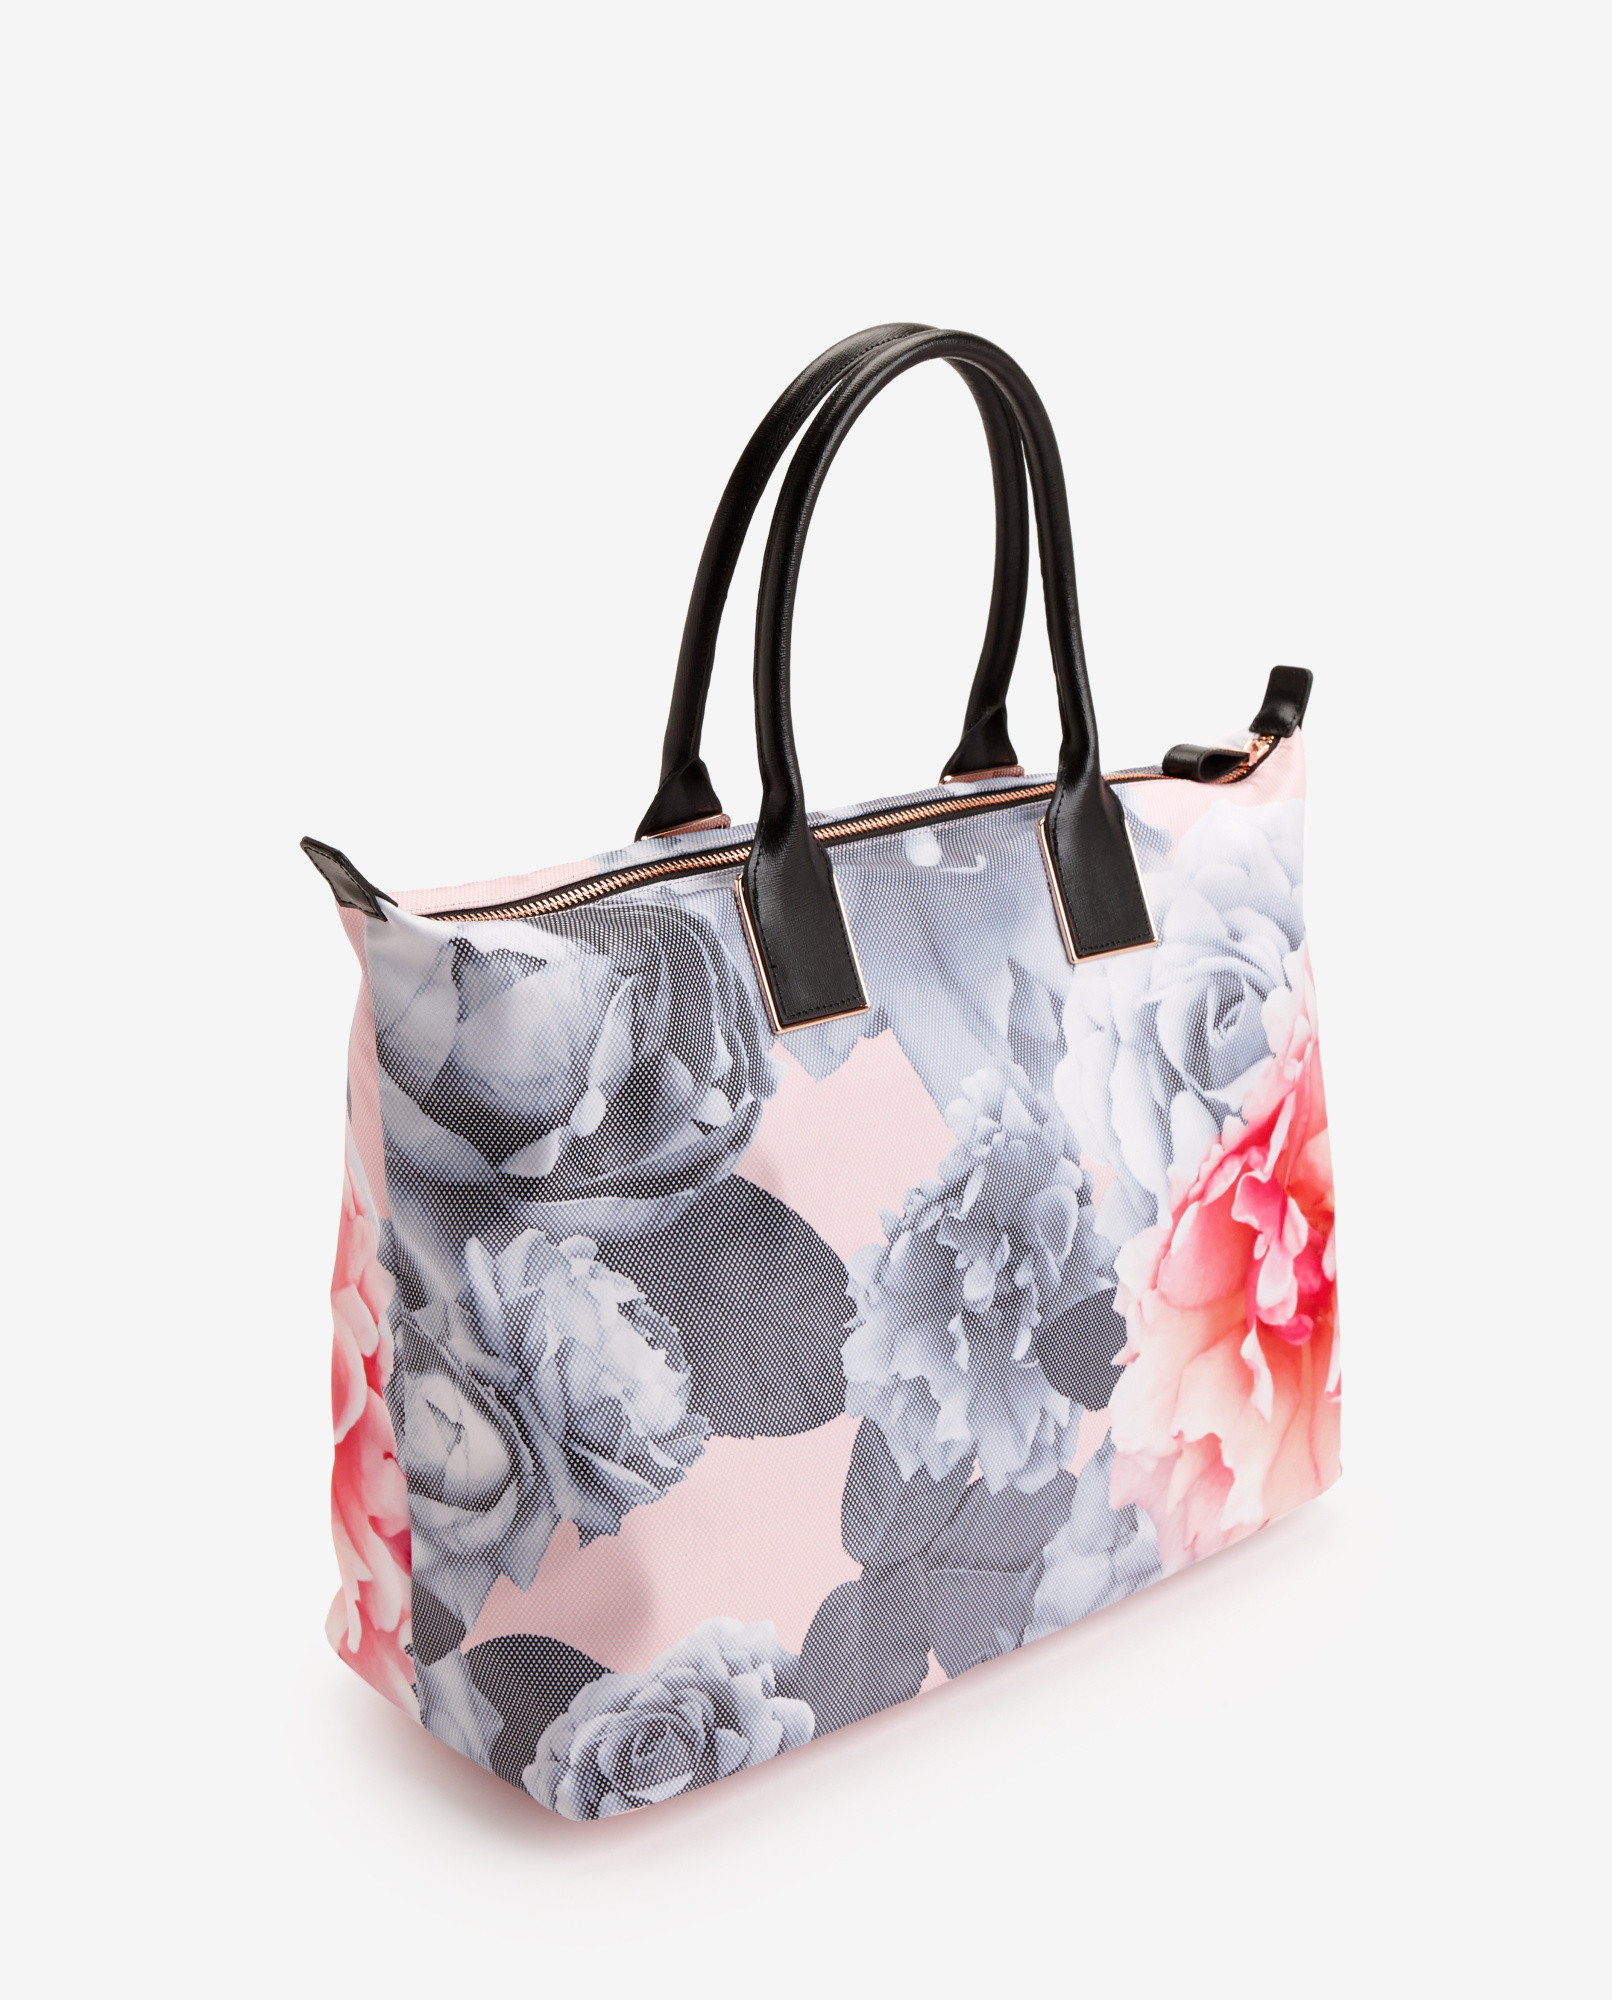 212081a2d6c Ted Baker Monorose Print Tote Bag in Natural - Lyst